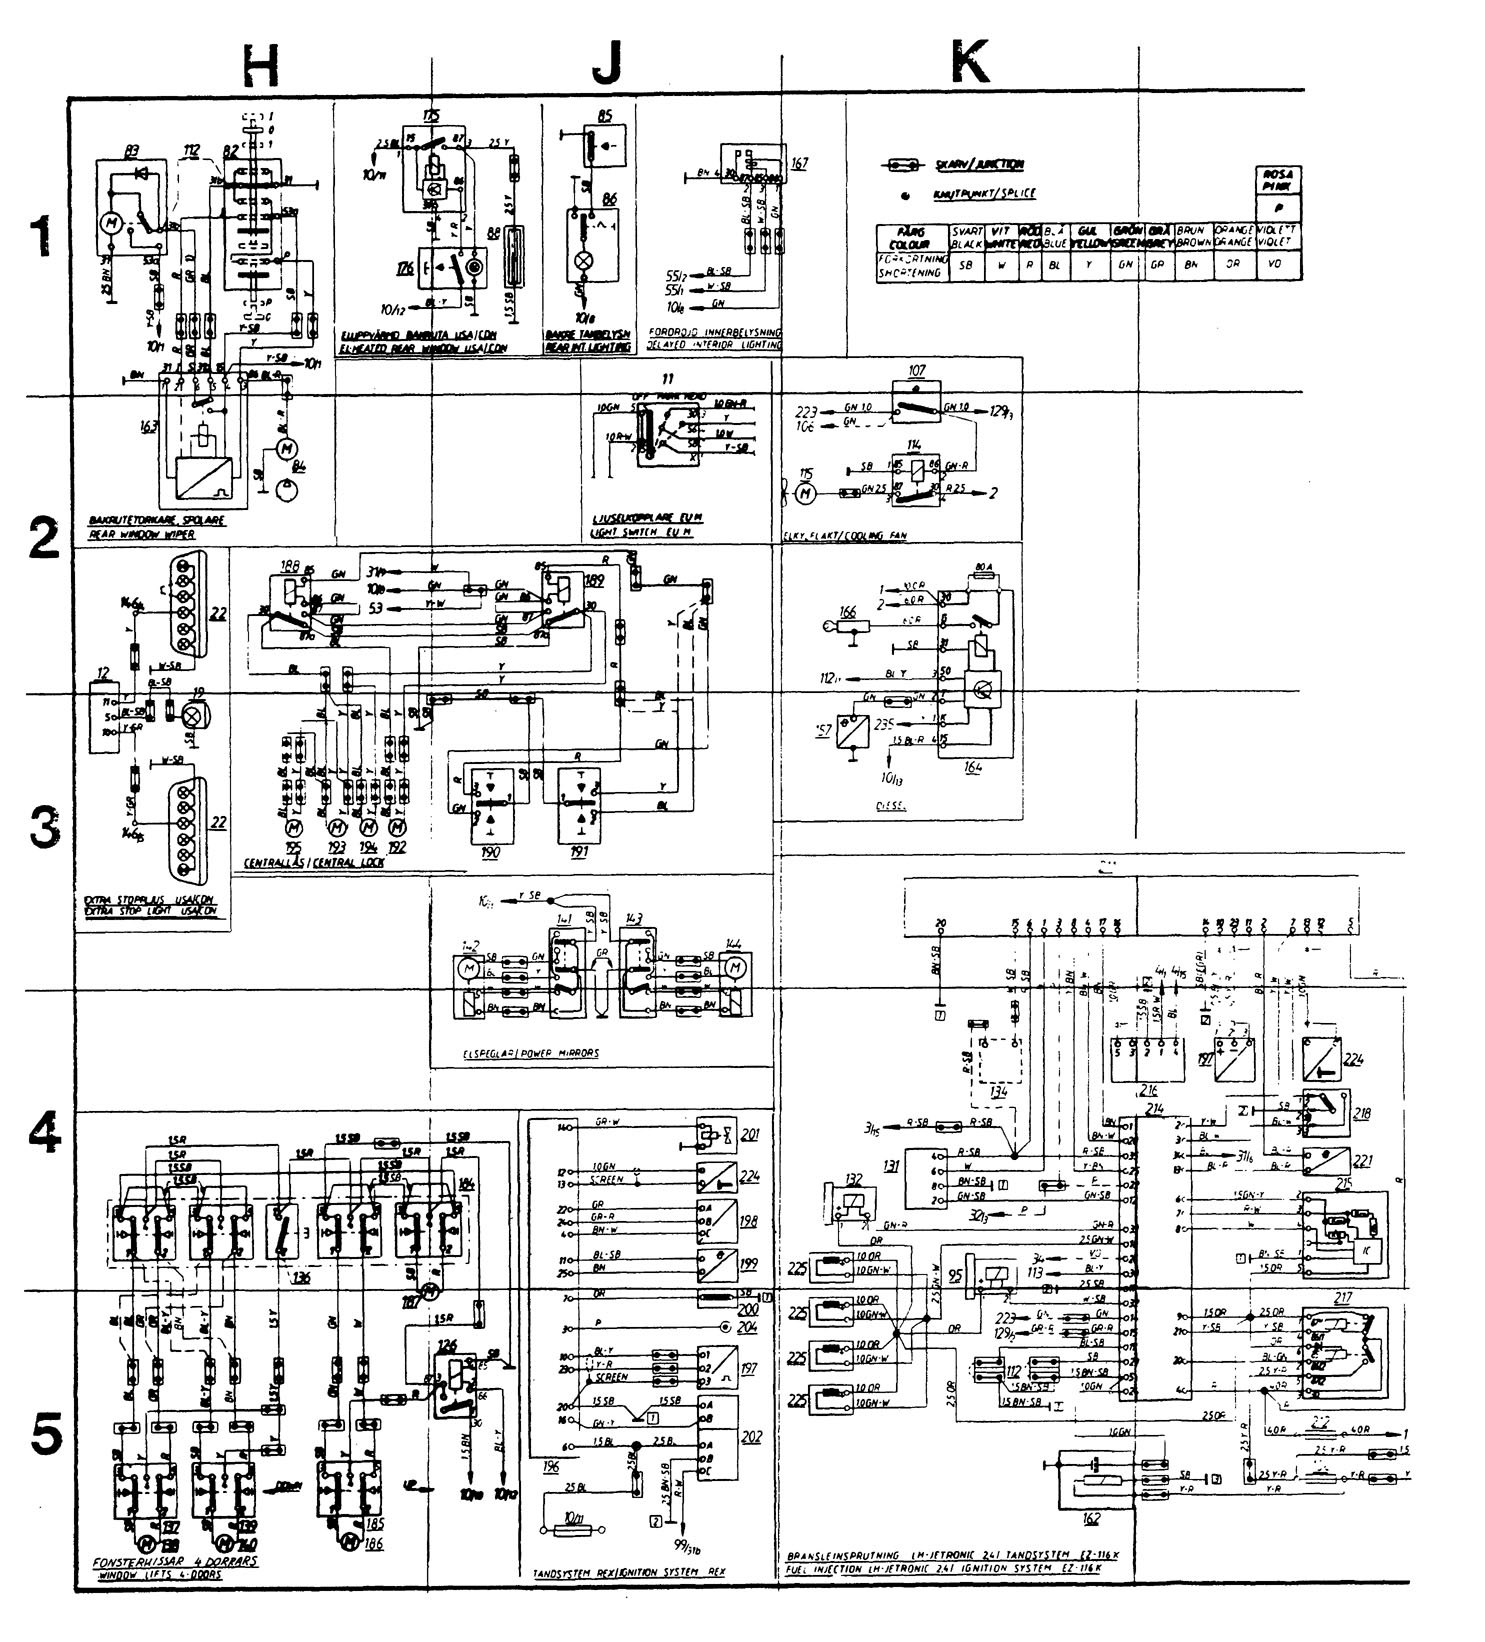 2001 Bmw 325i Fuse Diagram Wiring Schematic 01 Xterra Box 330ci Another Blog About U2022 525i Diagrams